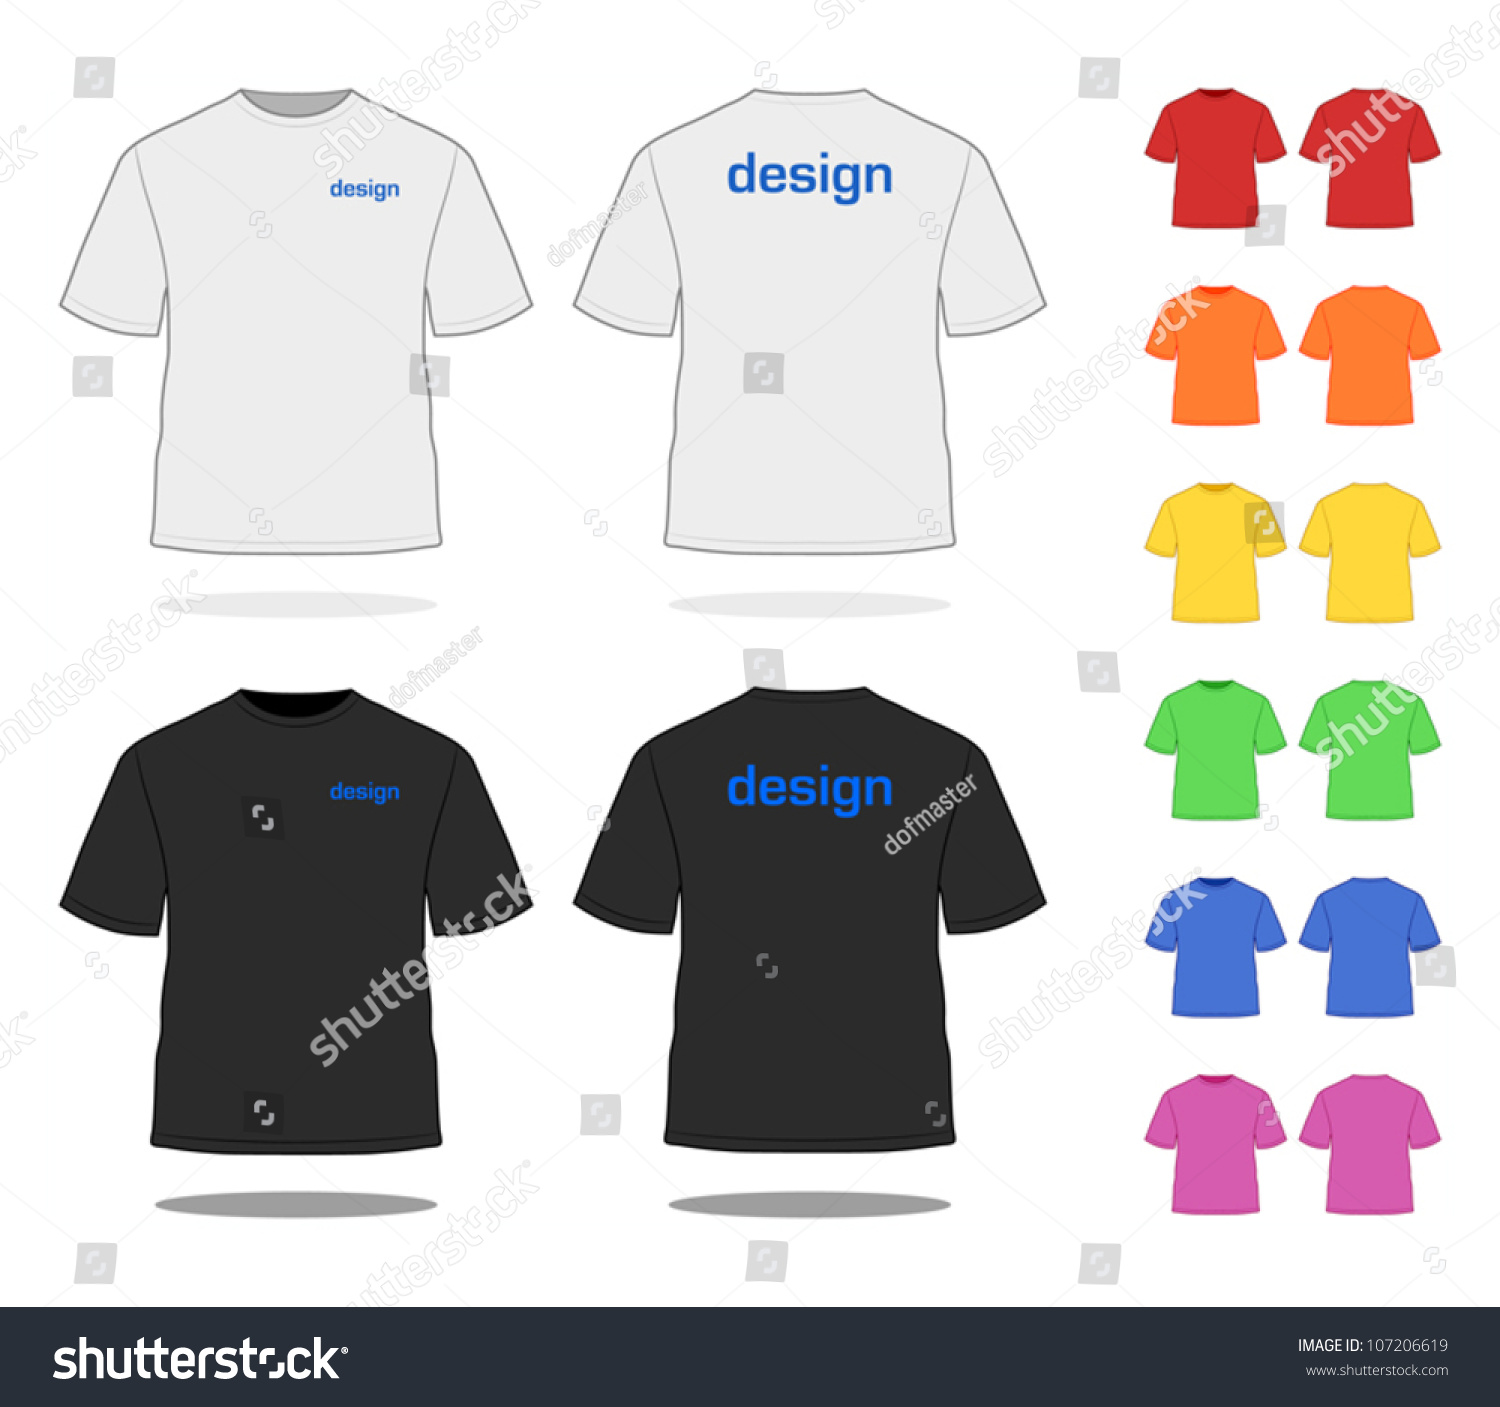 Design t shirt easy - Design T Shirt Easy T Shirt In Various Colors Simple Vector Easy To Adjust See